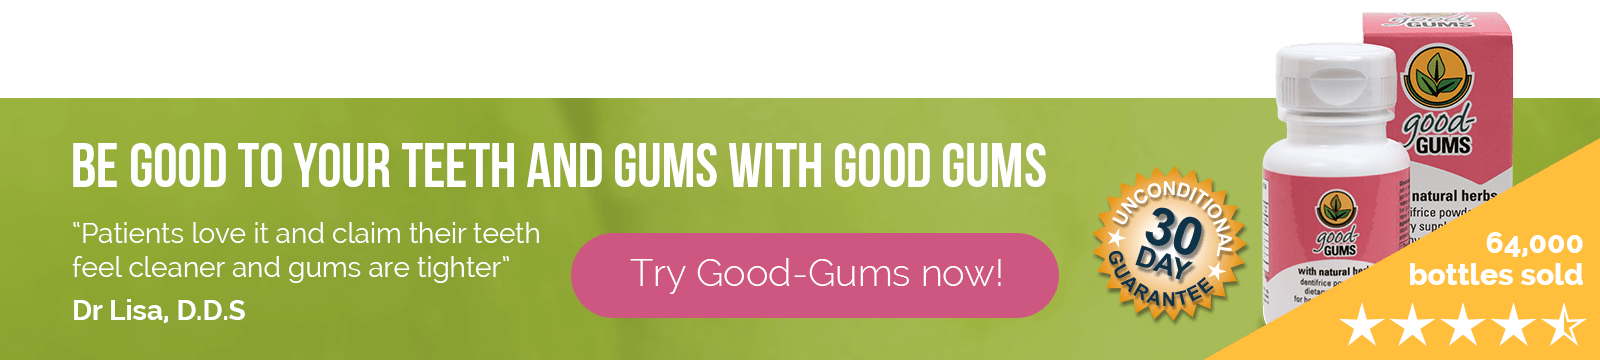 Try Good-Gums now!